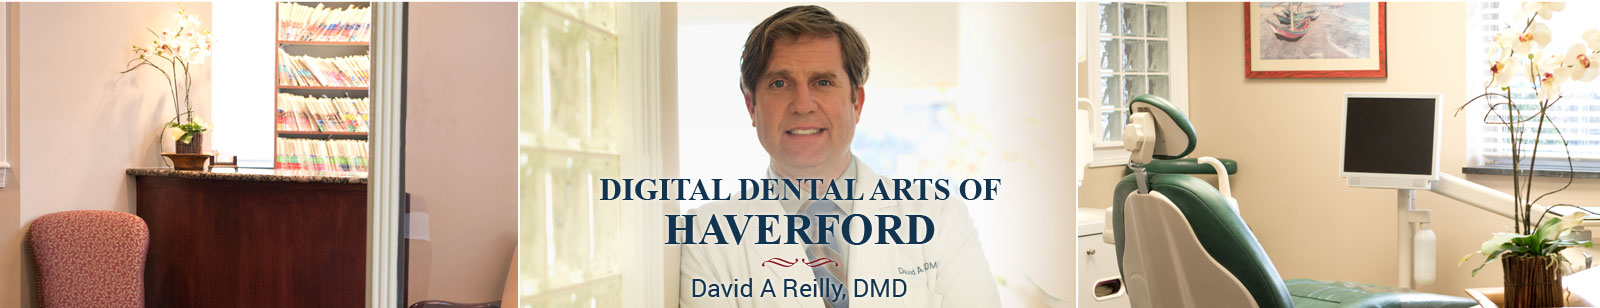 Digital Dental Arts of Haverford